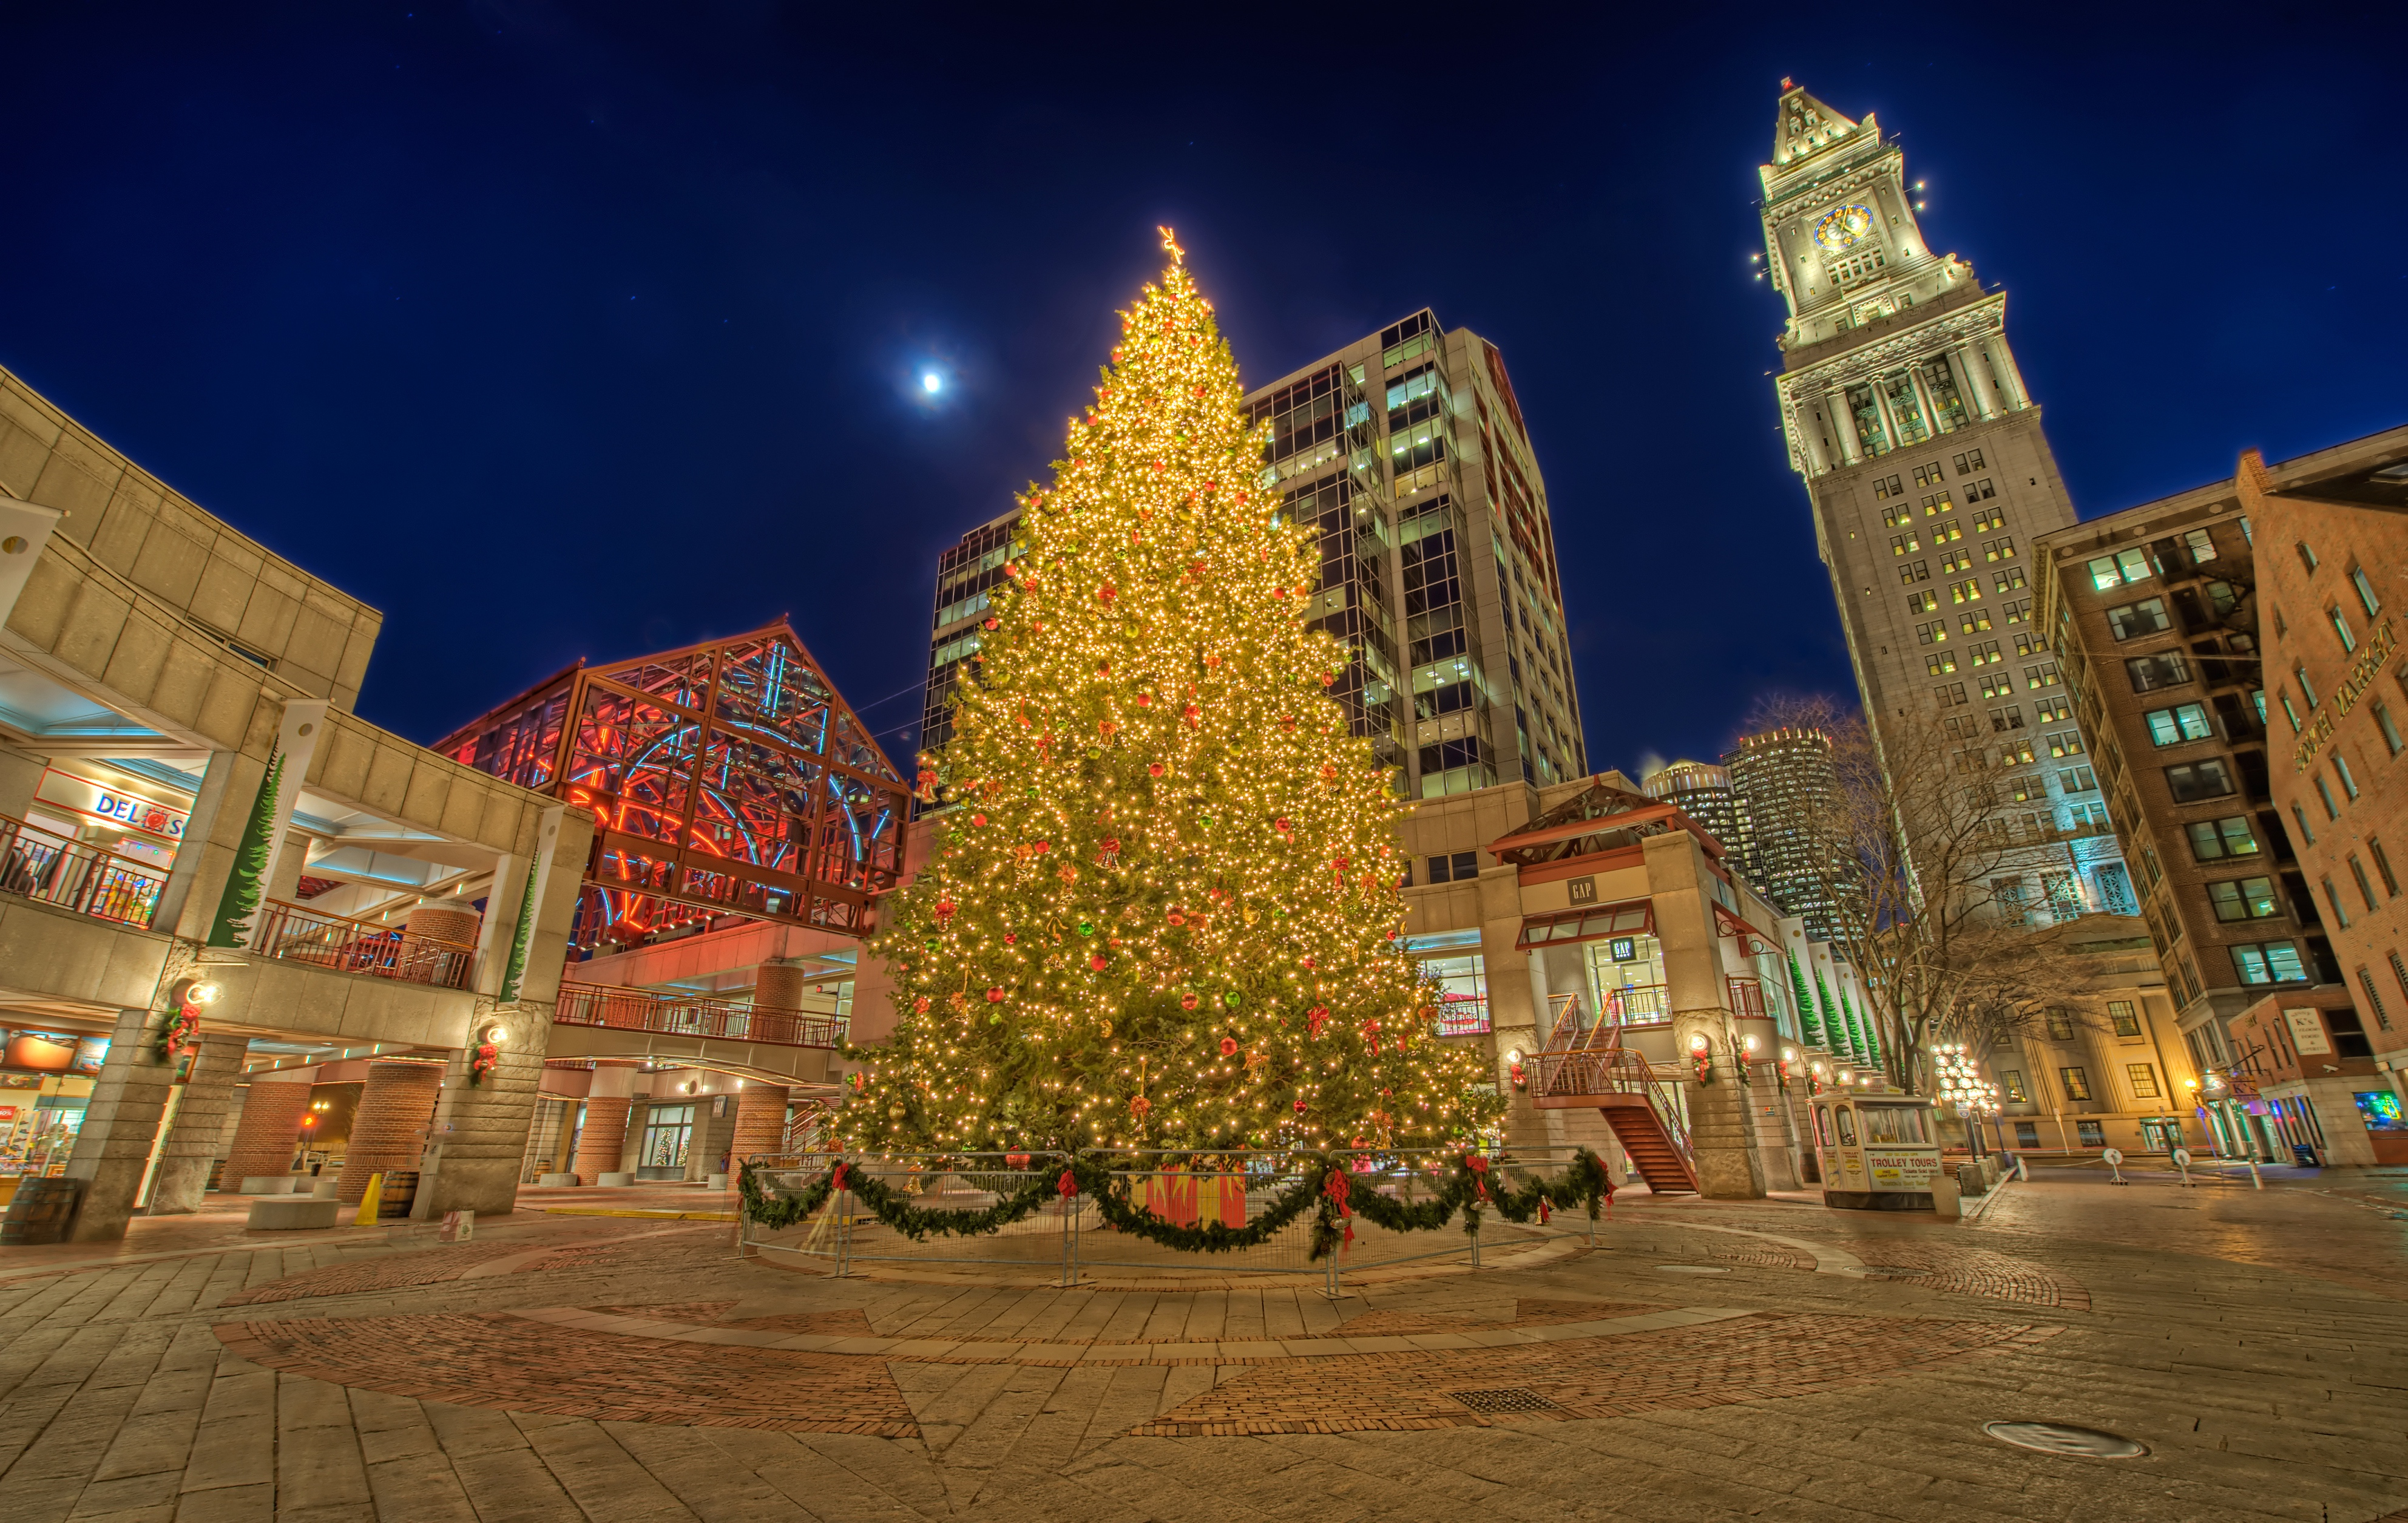 Boston Has Been Gifted a Special Christmas Tree for 2018